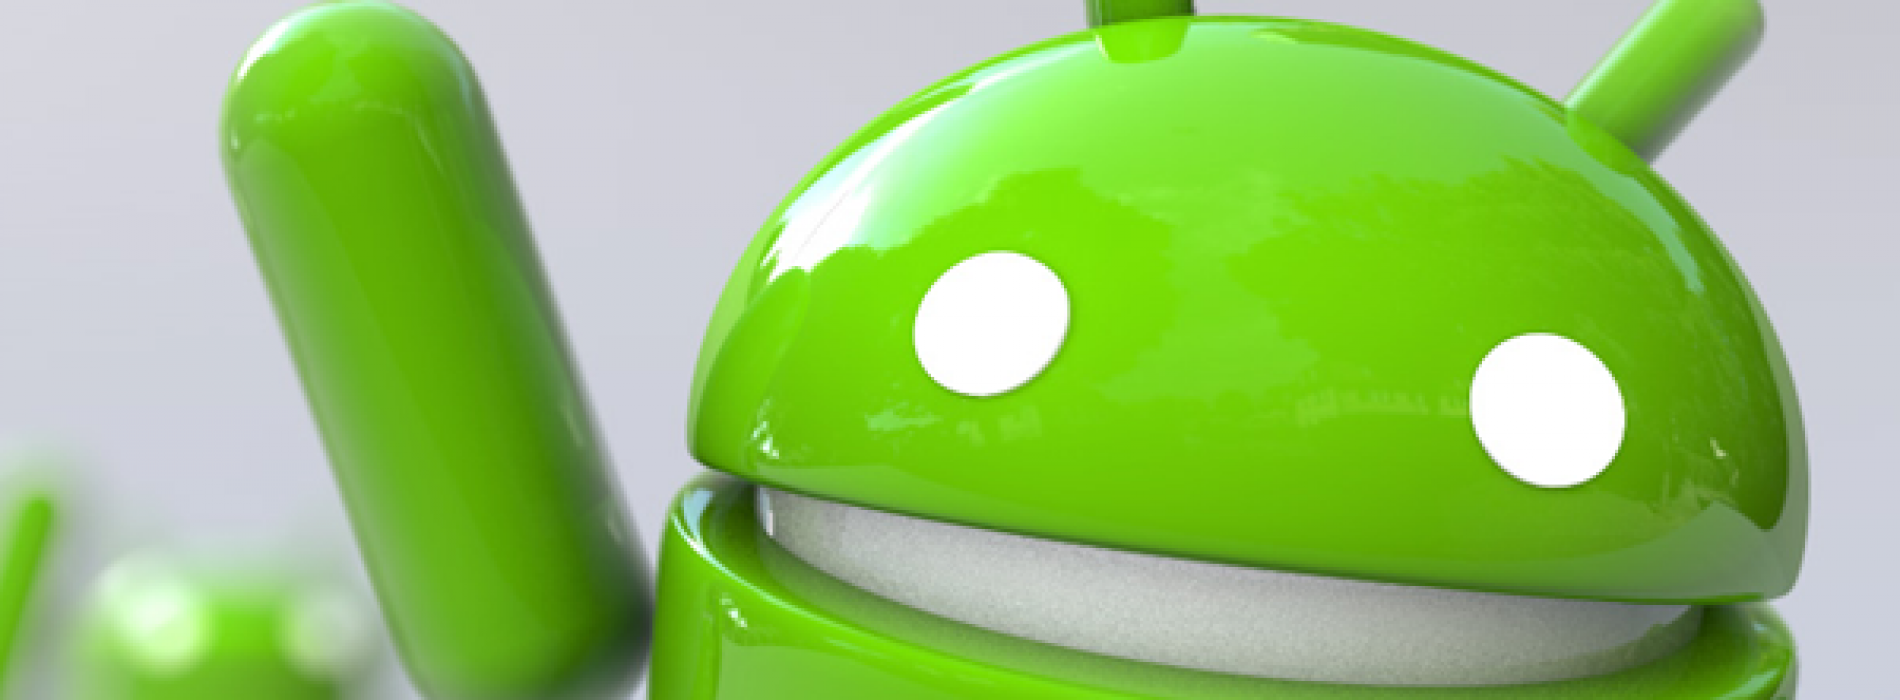 Rubin: Android activations eclipse 900k per day